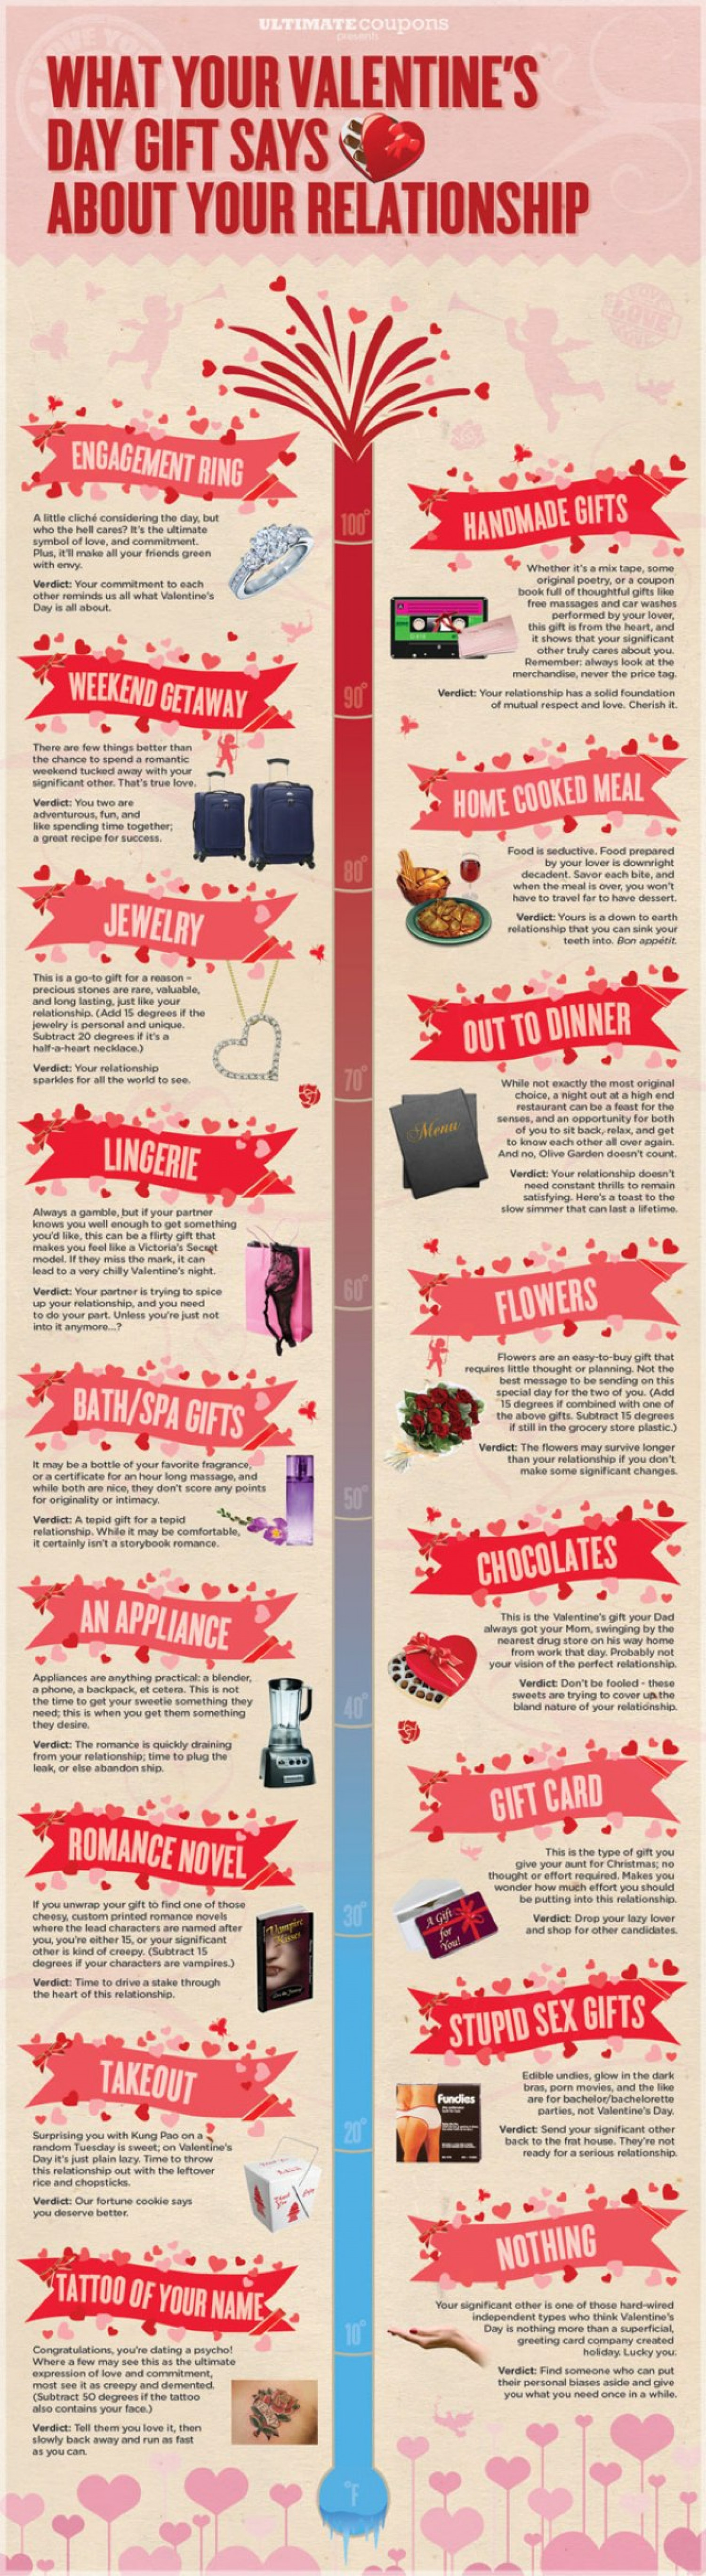 Valentines Day Gift Says About Your Relationship  Infographic